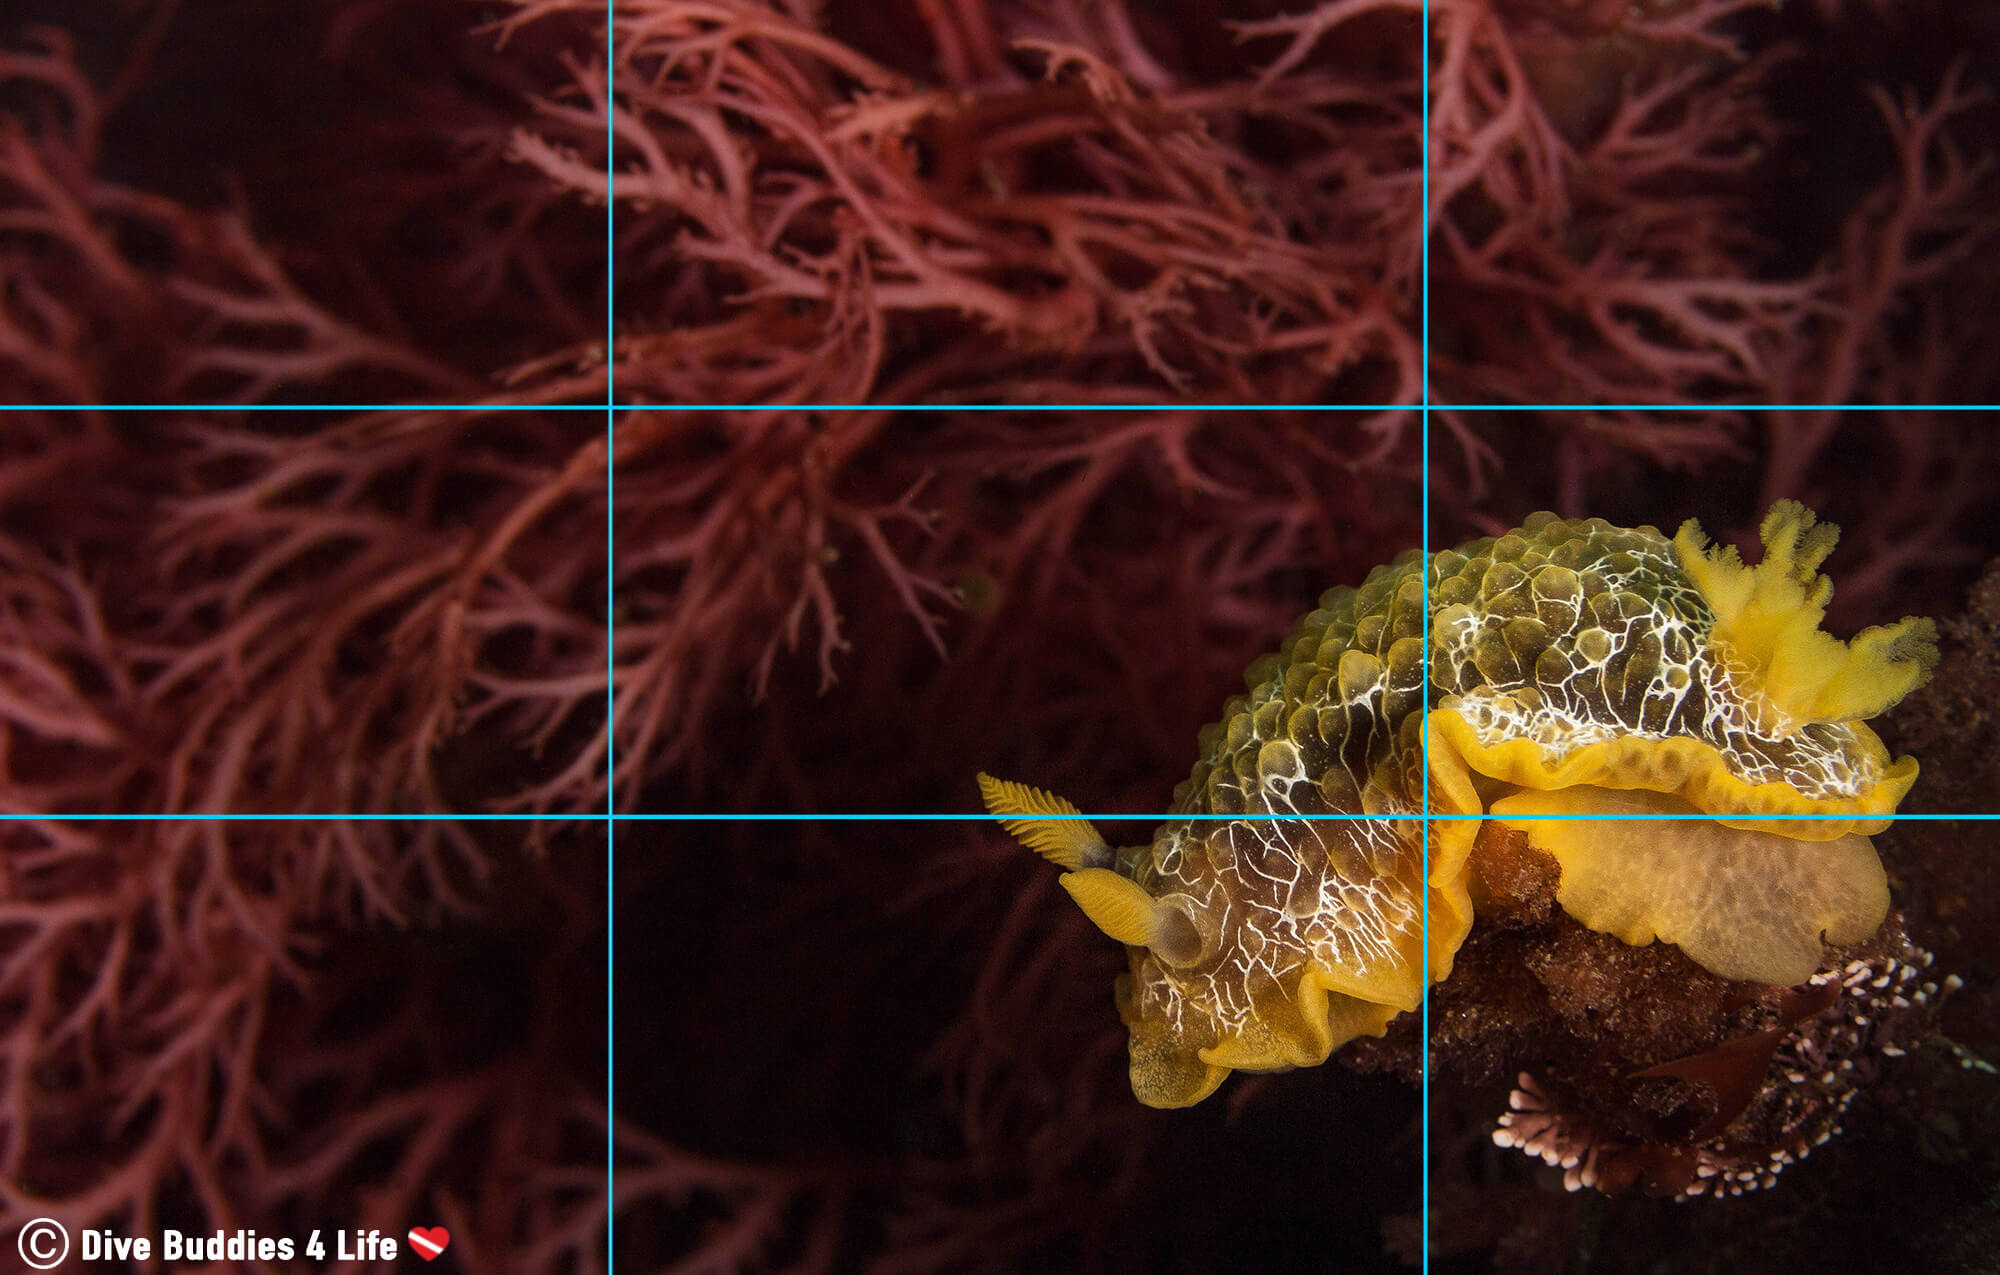 Yellow Nudibranch From Peniche Displaying The Photography Rule Of Thirds Composition